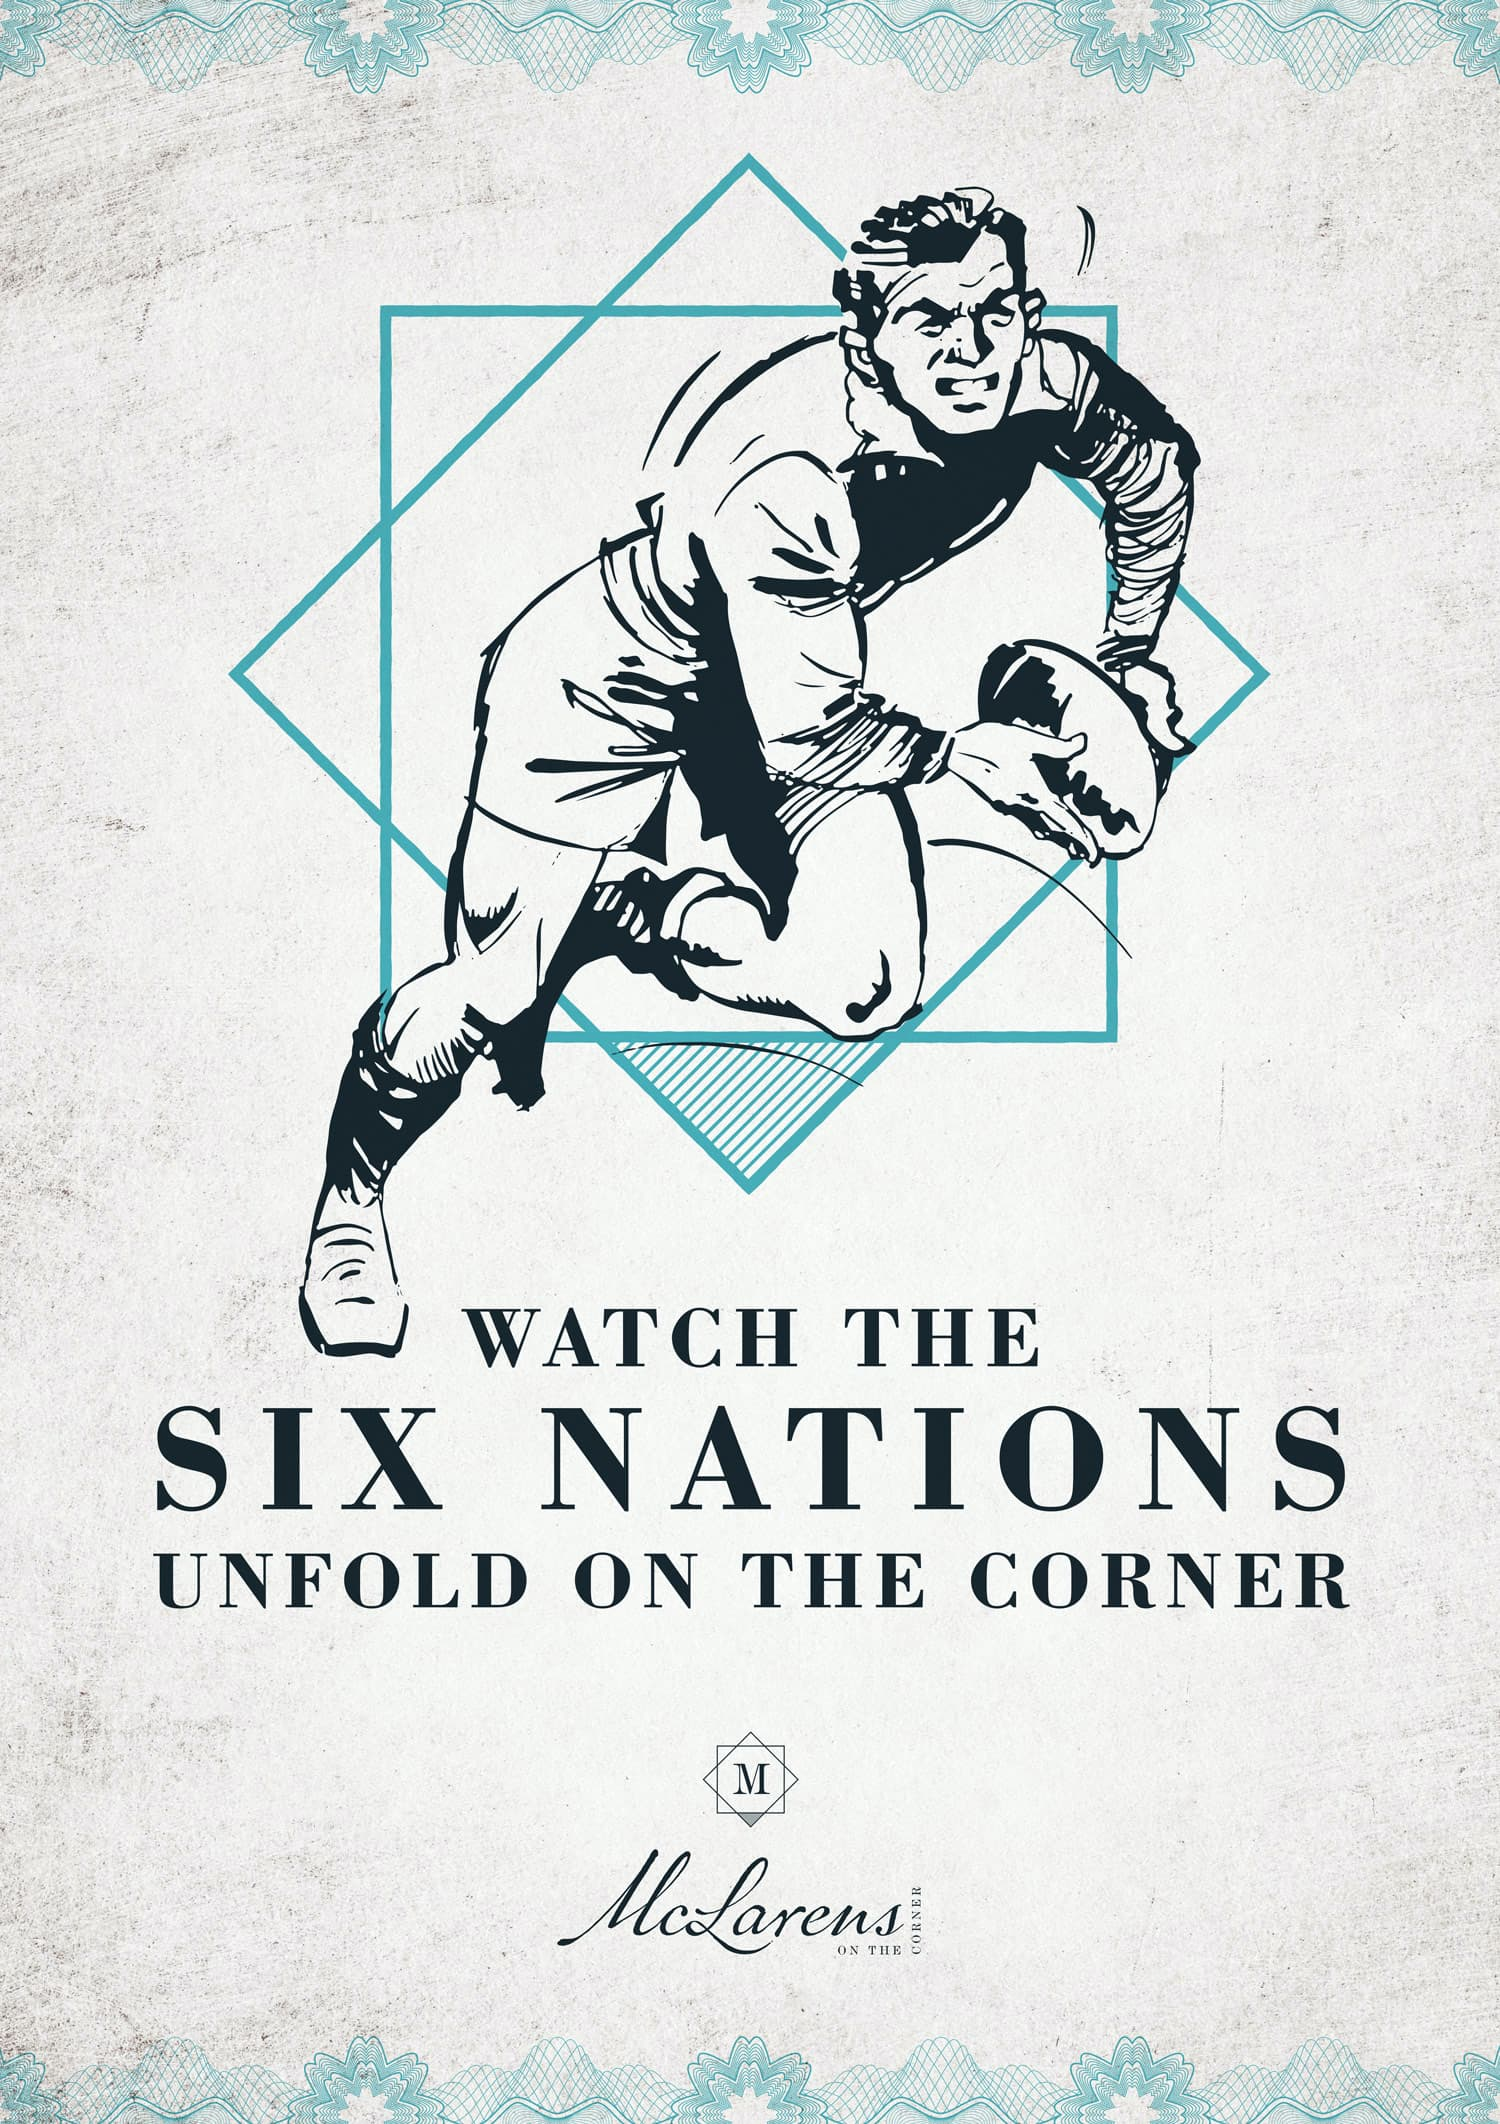 watch the 6 nations Edinburgh